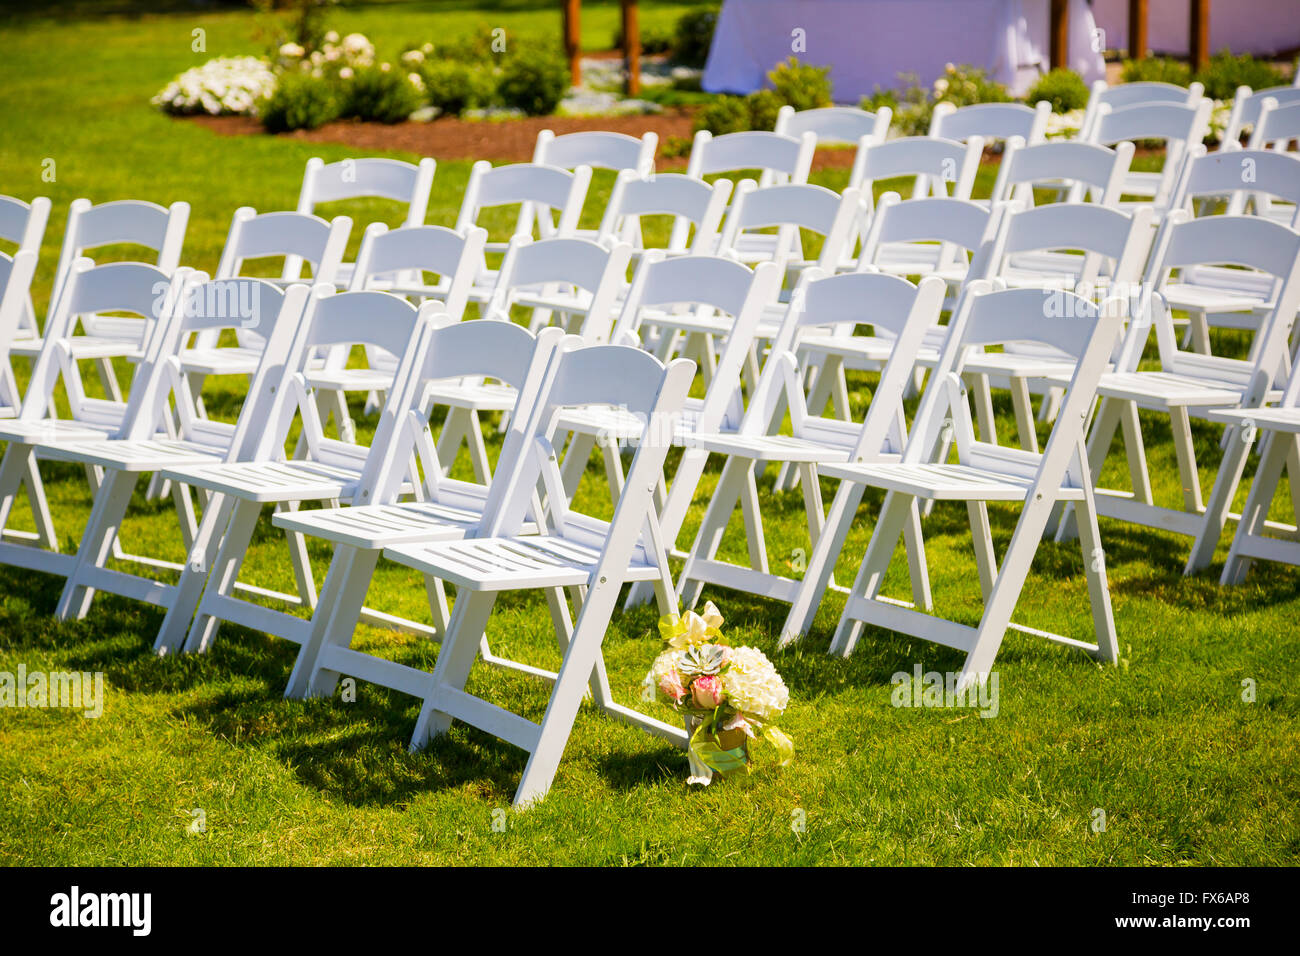 Wedding ceremony chair - Chairs In Rows For An Outdoor Wedding Ceremony On Grass In Oregon